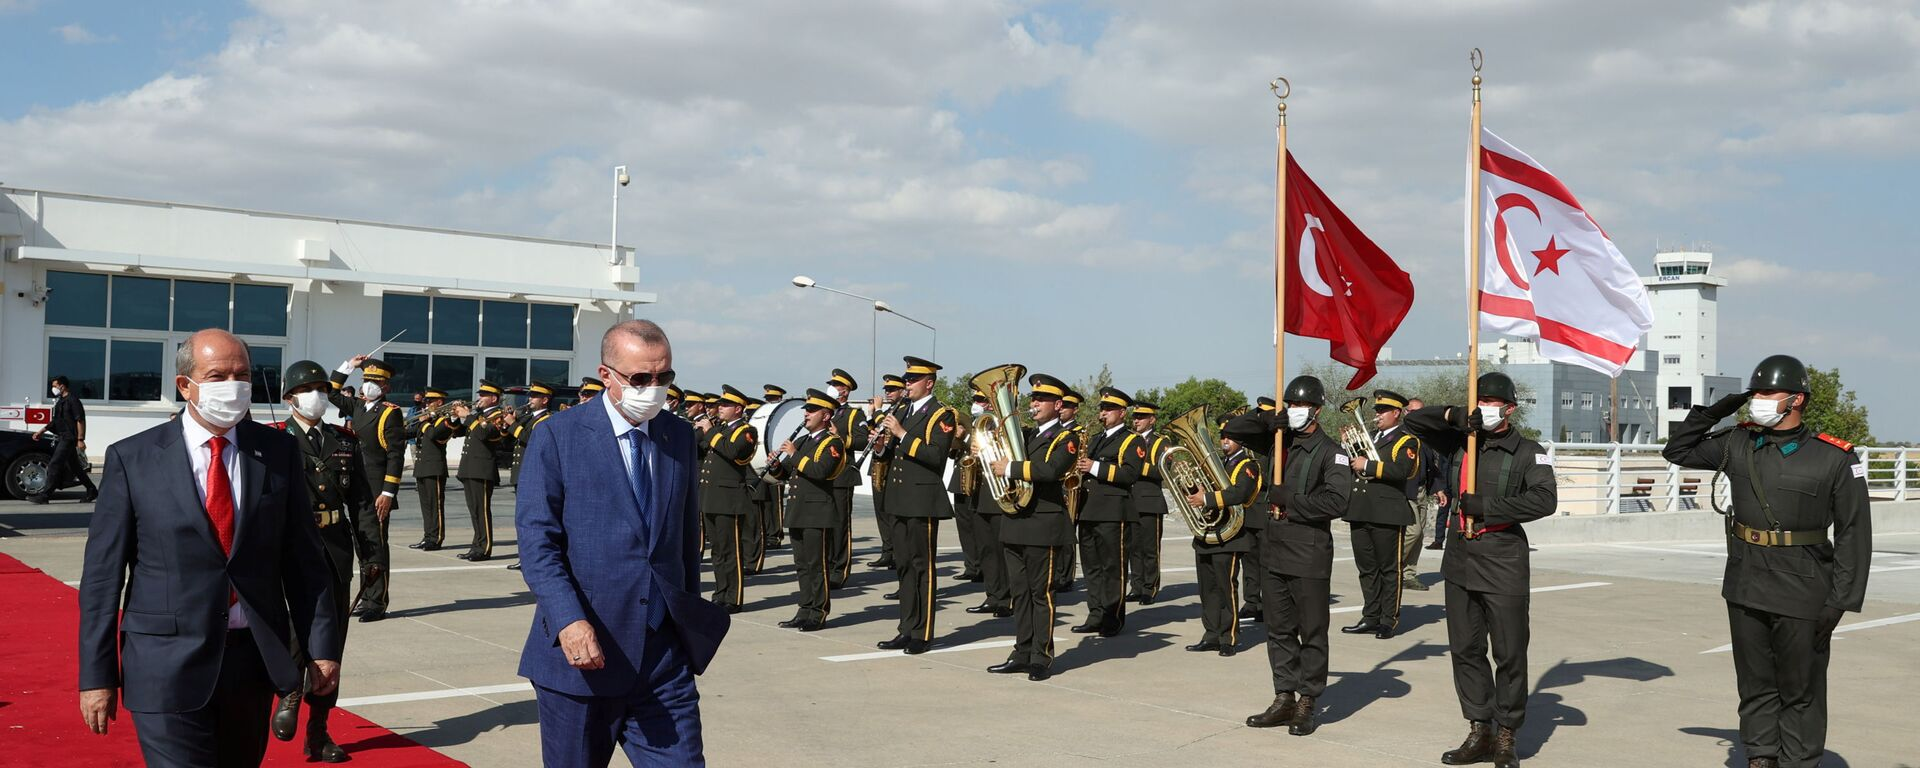 Turkish President Tayyip Erdogan reviews a guard of honour with Turkish Cypriot leader Ersin Tatar before he daparts from the Turkish Republic of Northern Cyprus, a breakway state recognized only by Turkey, in northern Nicosia, Cyprus July 20, 2021. - Sputnik International, 1920, 21.07.2021